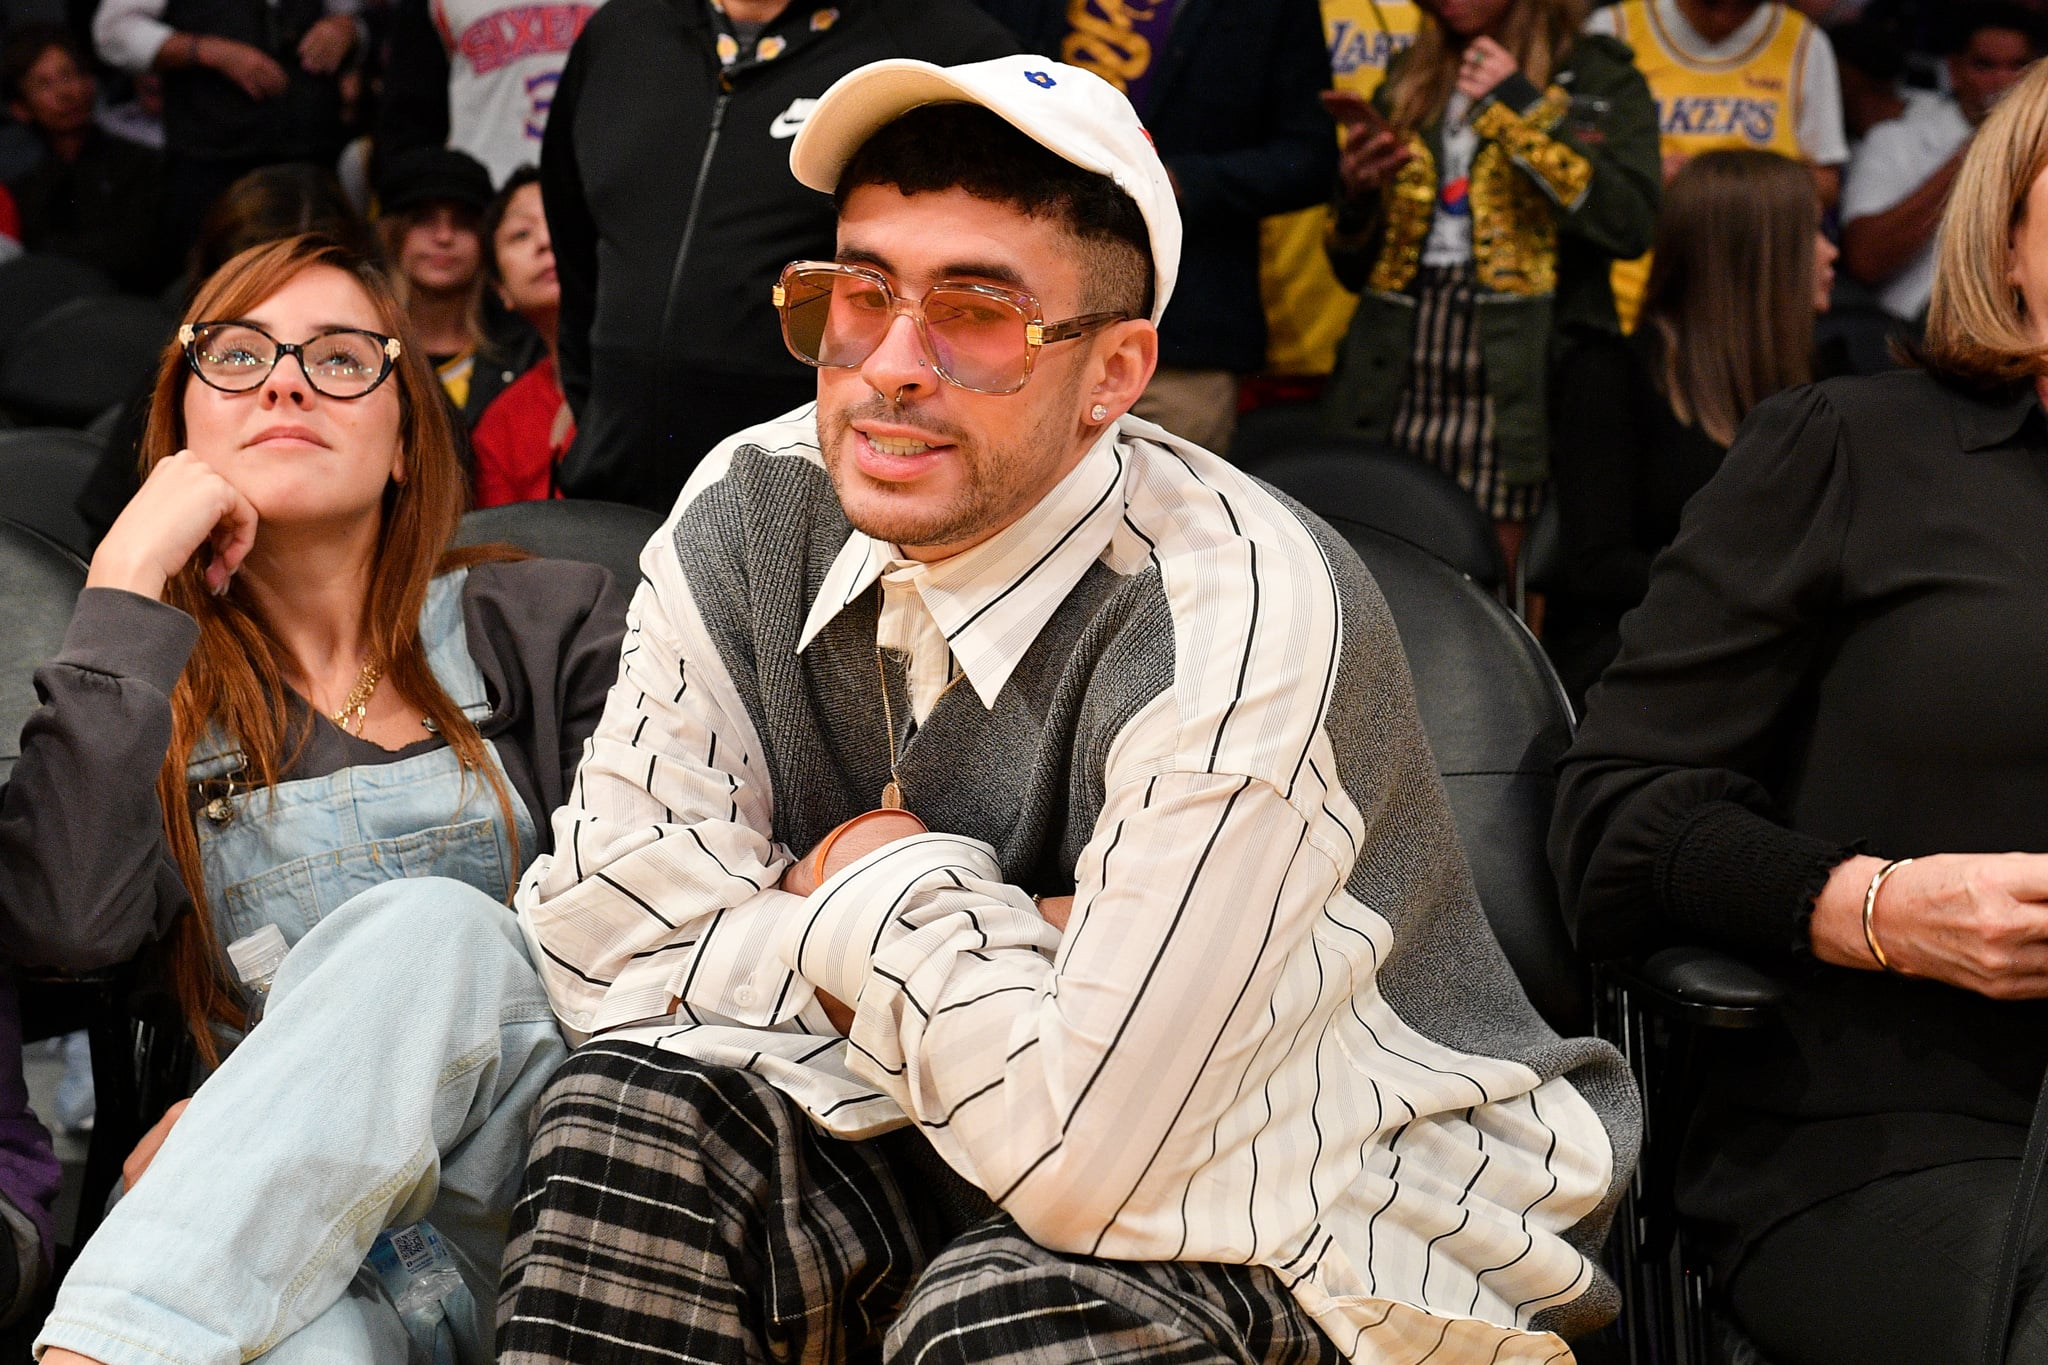 LOS ANGELES, CALIFORNIA - MARCH 03: Singer Bad Bunny attends a basketball game between the Los Angeles Lakers and the Philadelphia 76ers at Staples Center on March 03, 2020 in Los Angeles, California. (Photo by Allen Berezovsky/Getty Images)